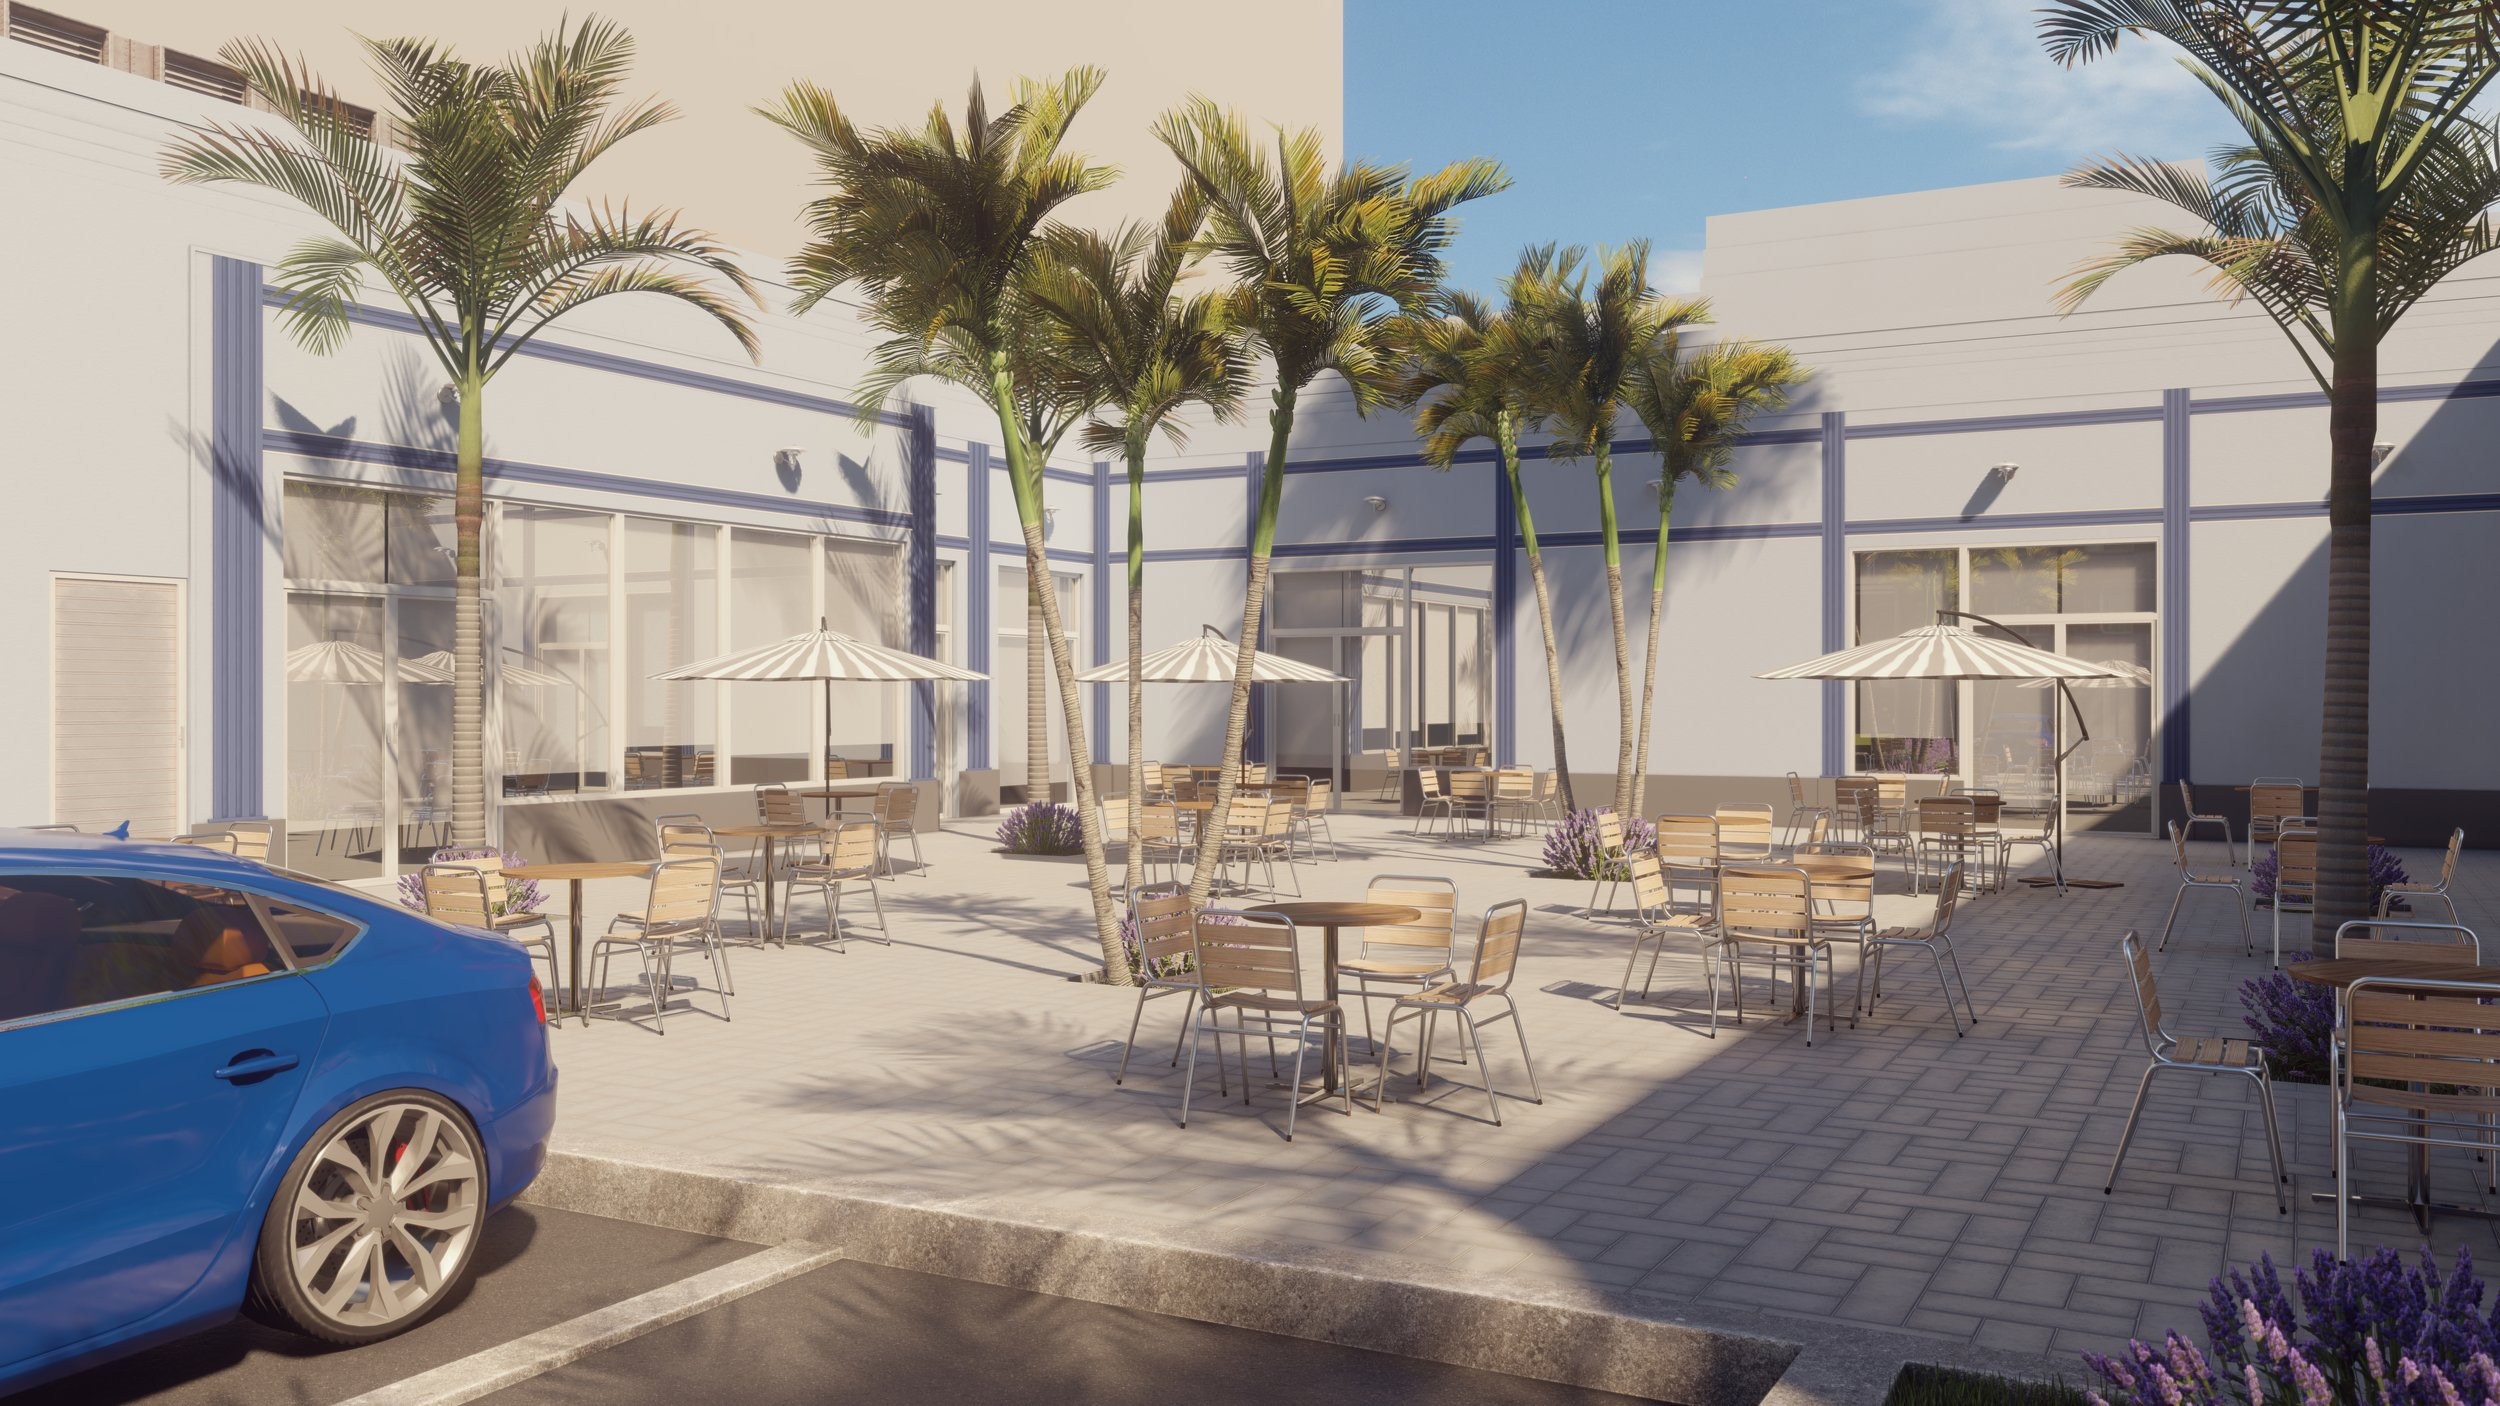 Epicure Gourmet Market's Jason Starkman To Sublease Epicure's Former 31,000 SF Space On Lincoln Road